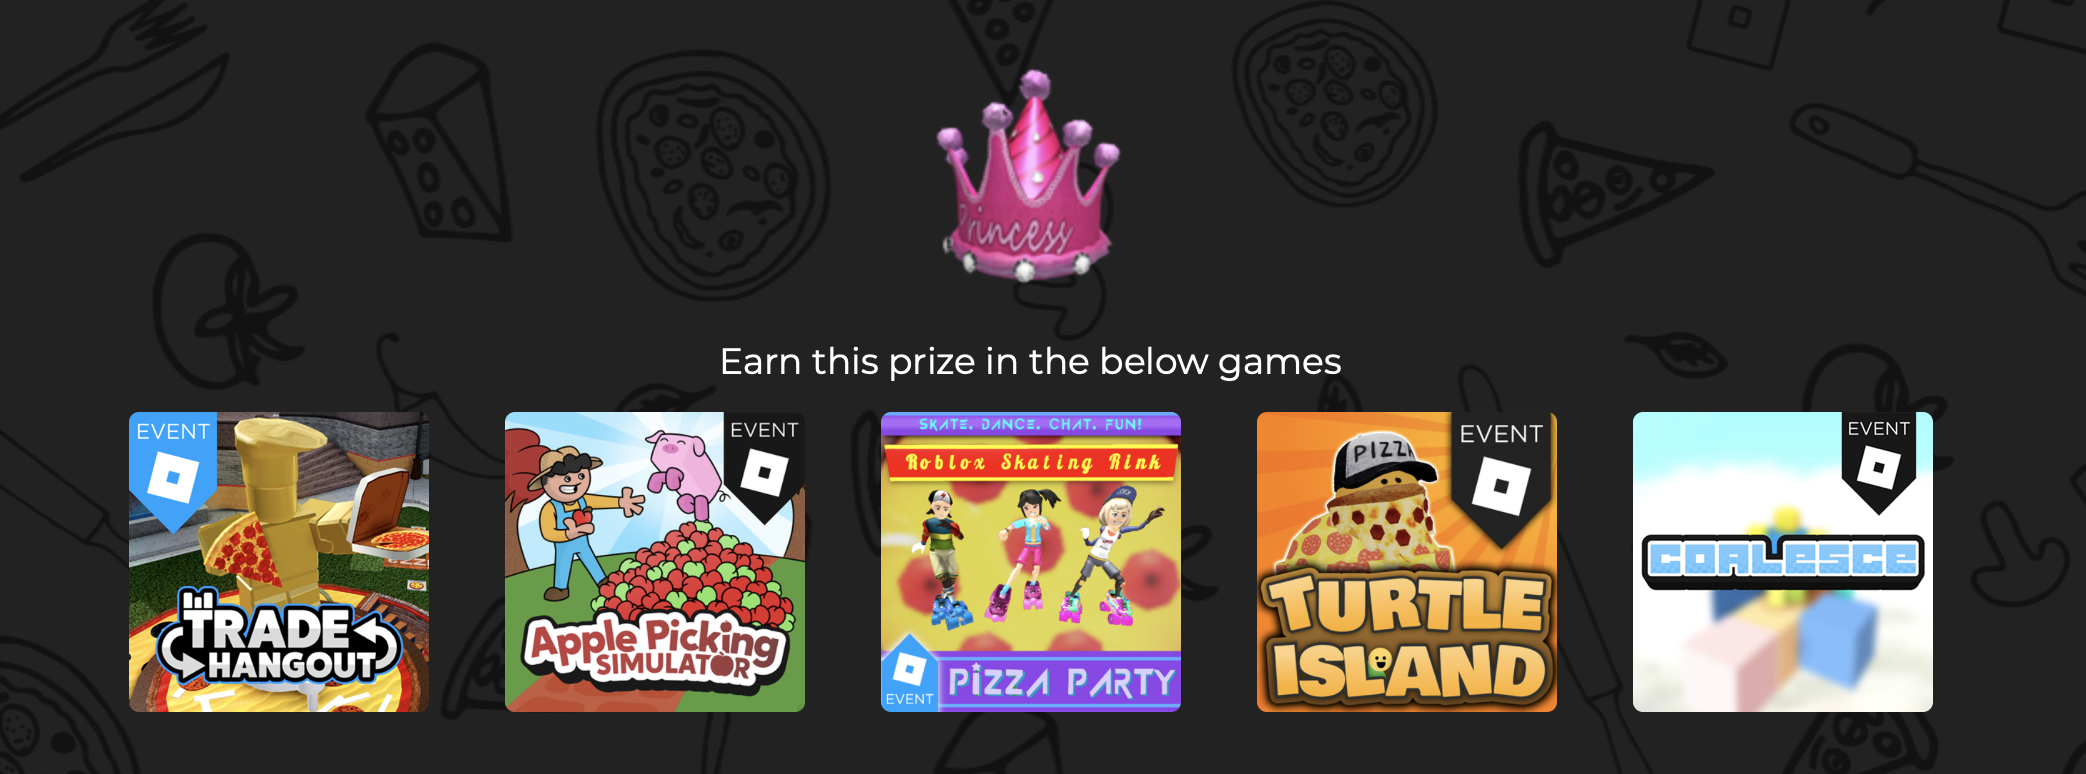 Roblox Pizza Party Event: How To Get The Royal Party Hat